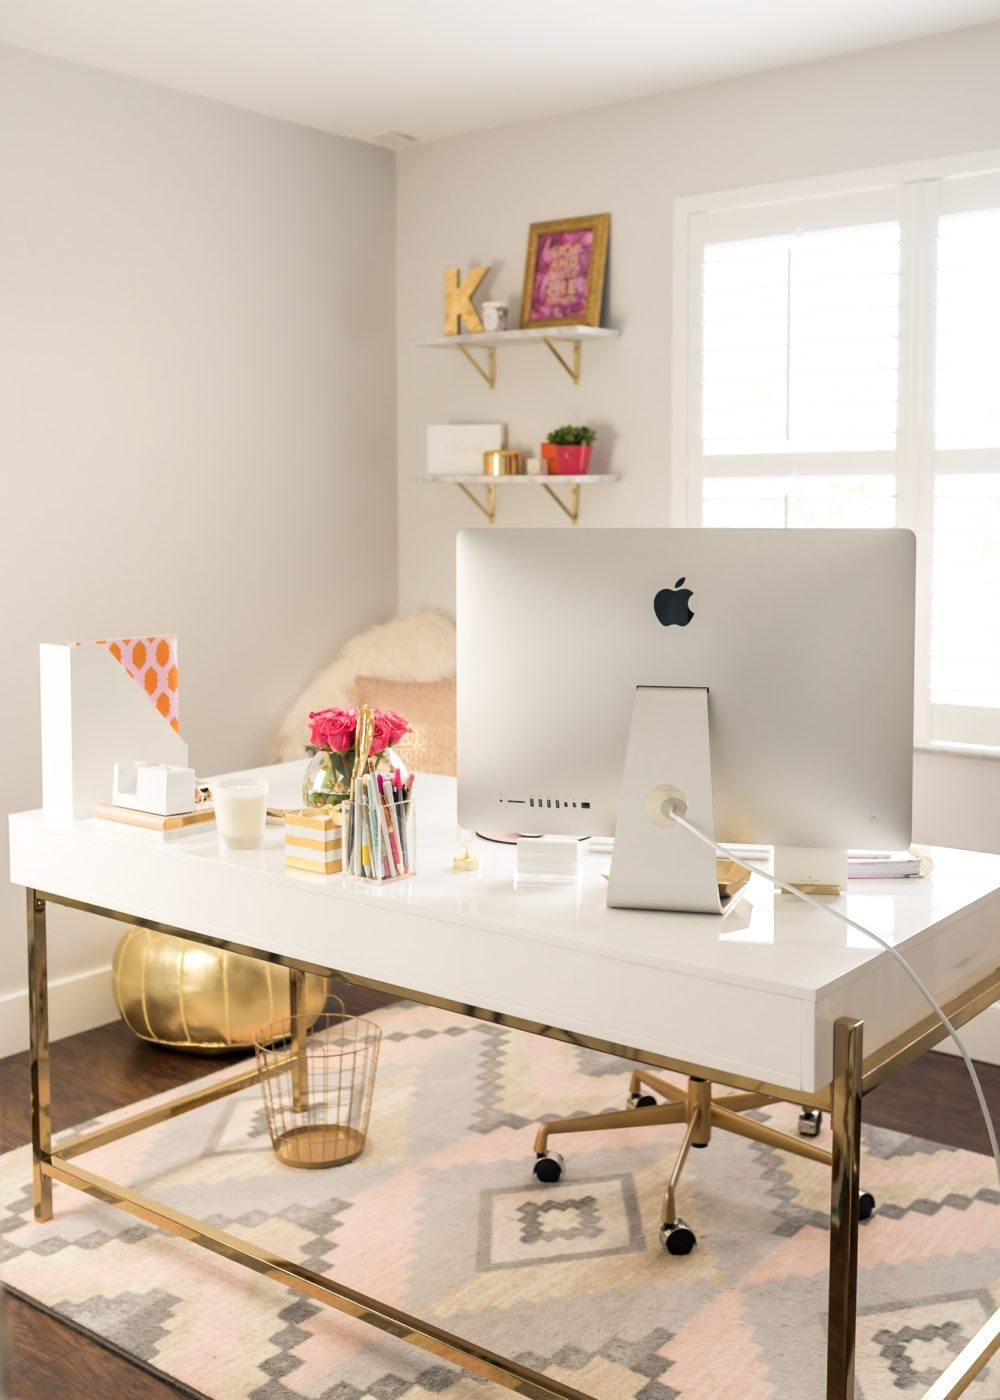 Home Office Decor. 25 Great Home Office Decor Ideas - Brint.co